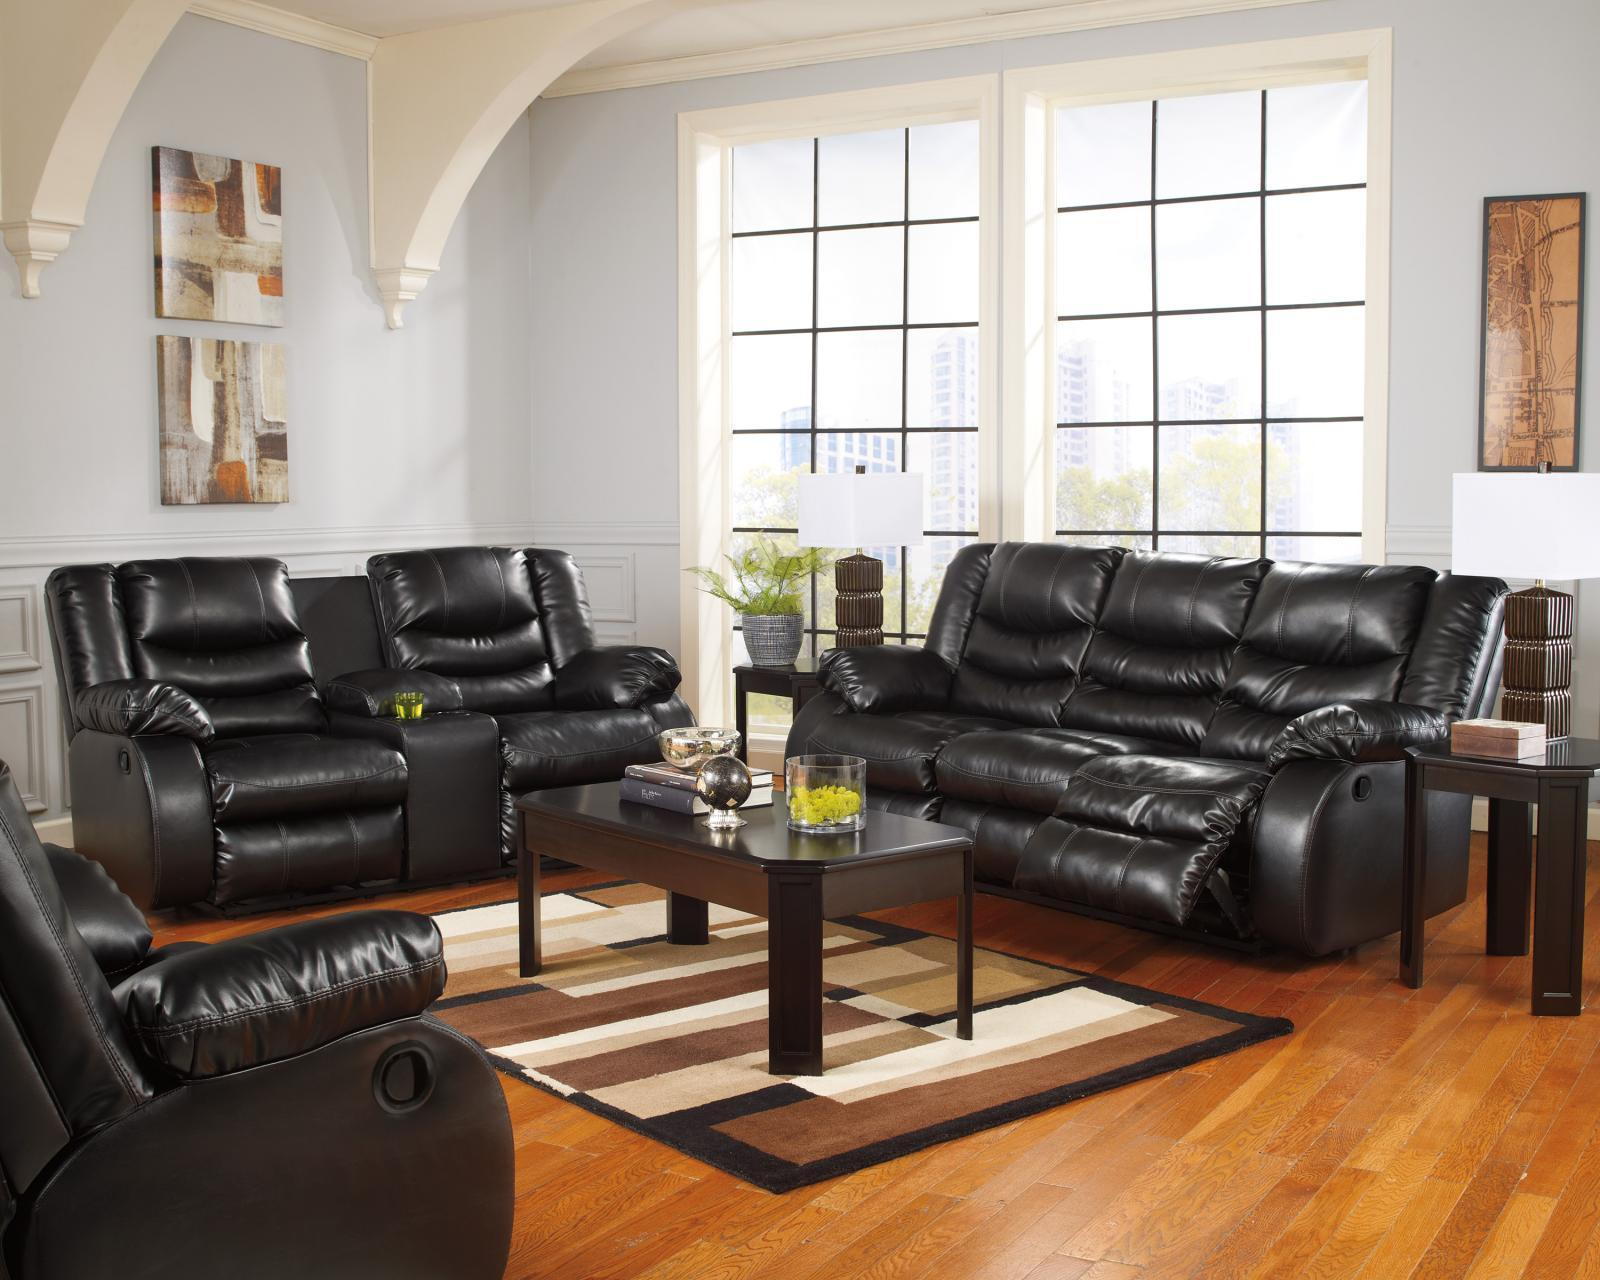 Ashley Linebacker DuraBlend Living Room Set 3pcs in Black Contemporary Style